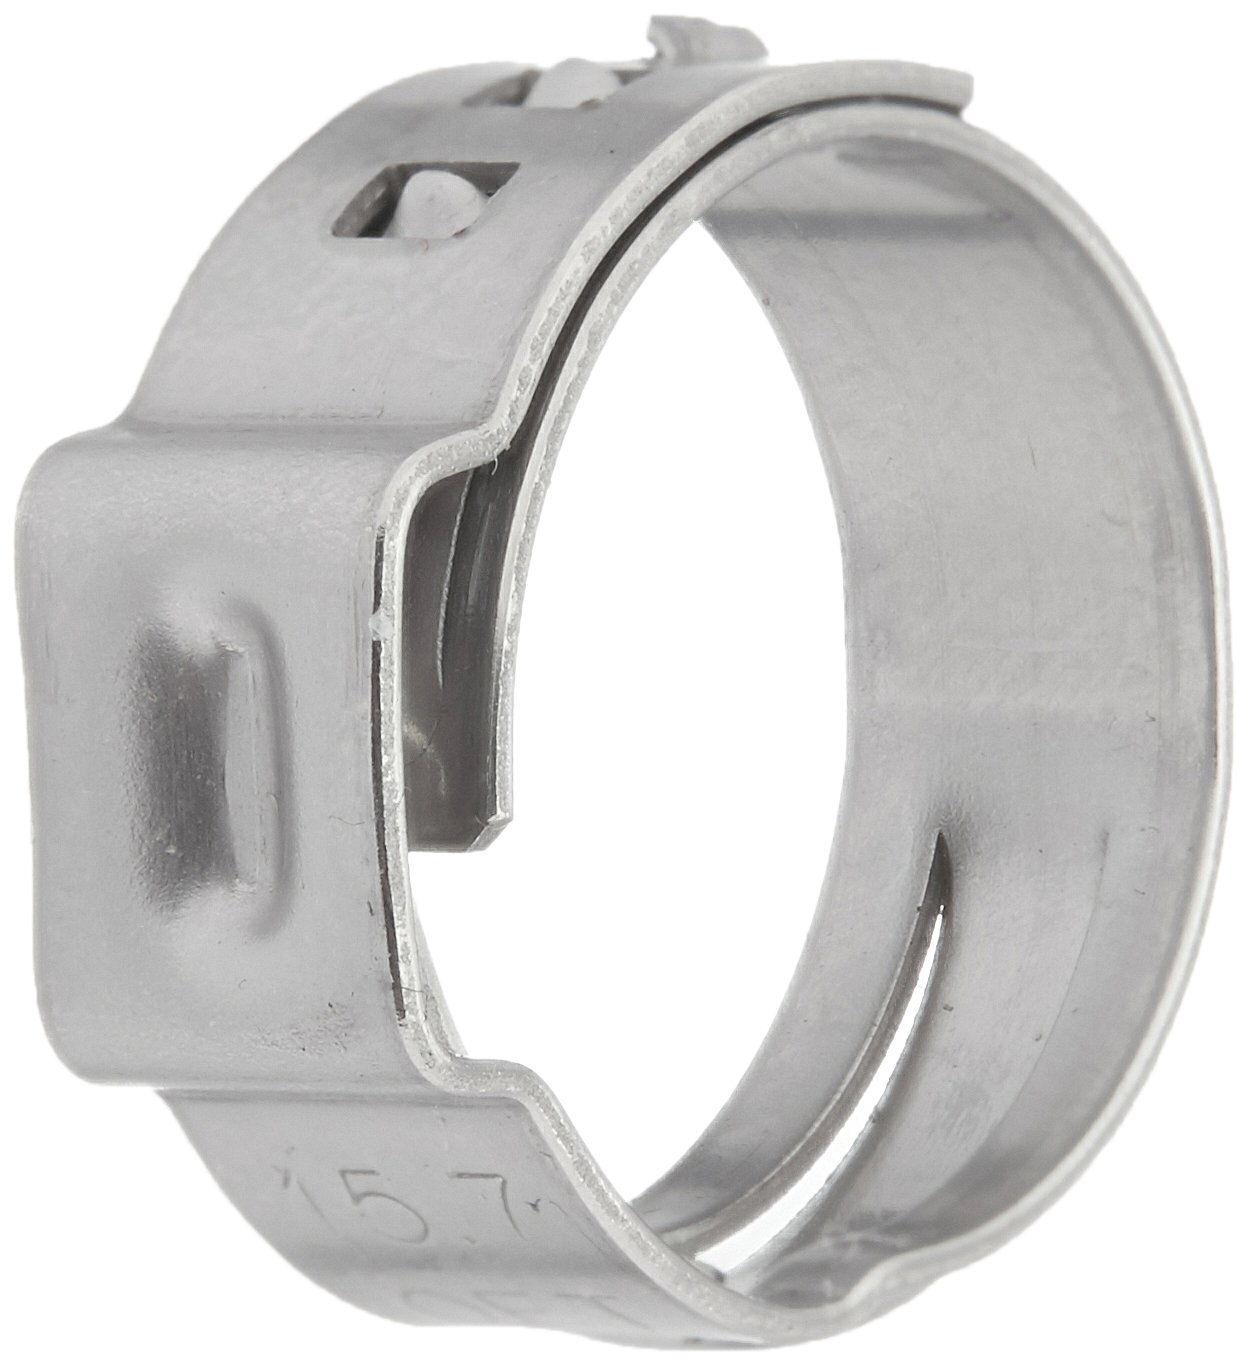 Clamp ID Range 40.8 mm - 44 mm Open One Ear Oetiker 16703640 Stepless Ear Clamp Closed Pack of 5